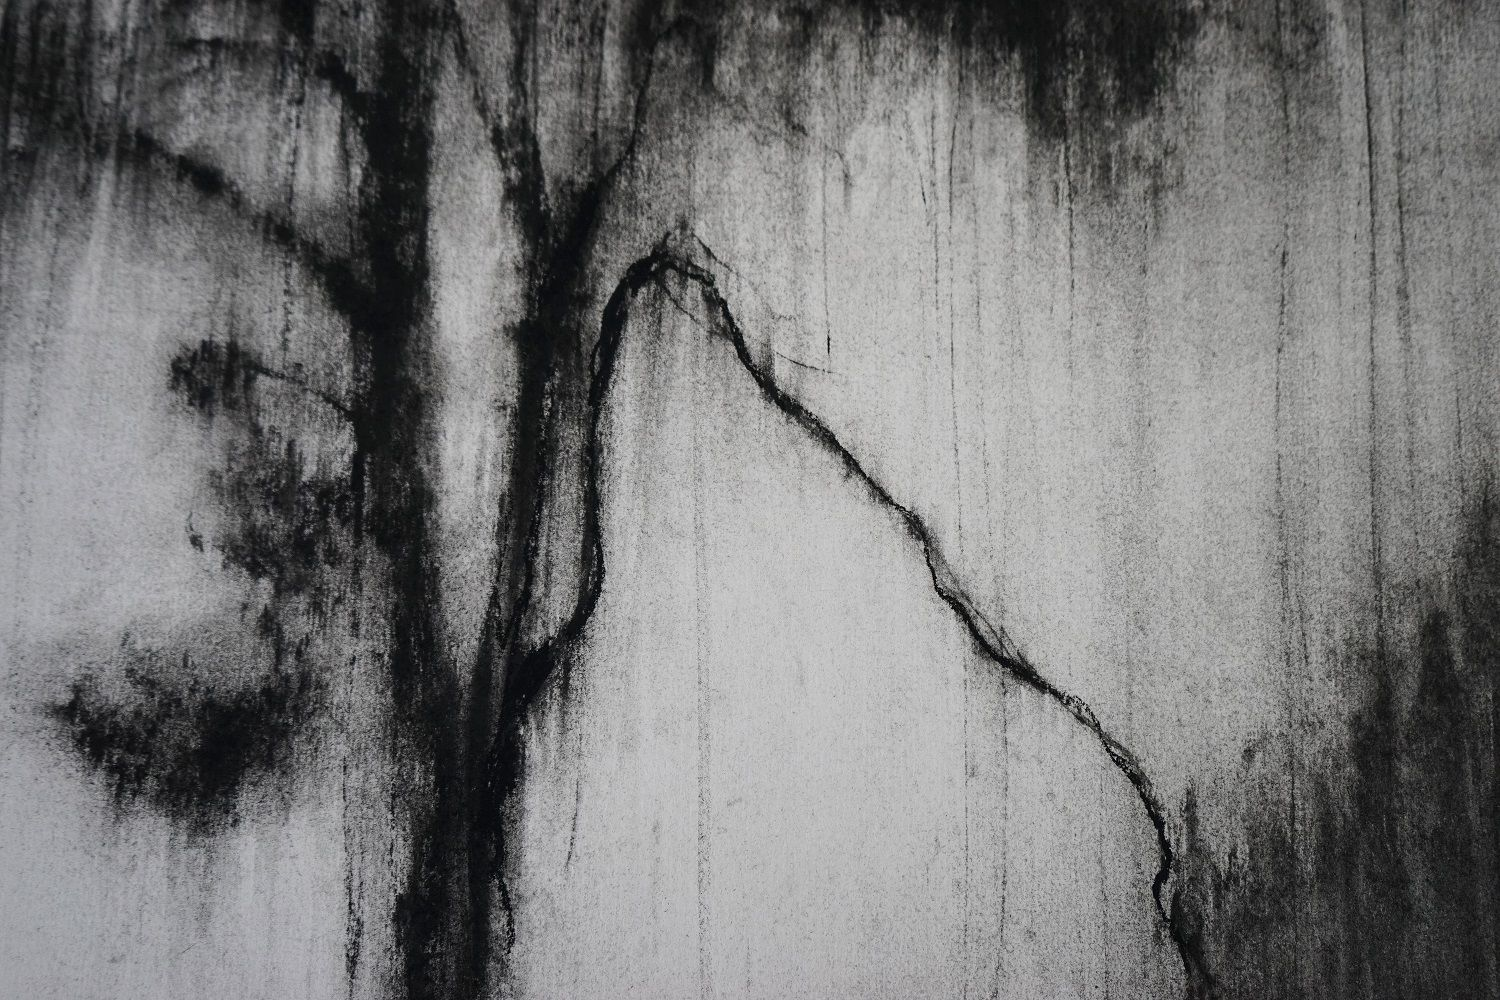 Arbre fragment 1,Guy Oberson,Contemporary painting, detail 4